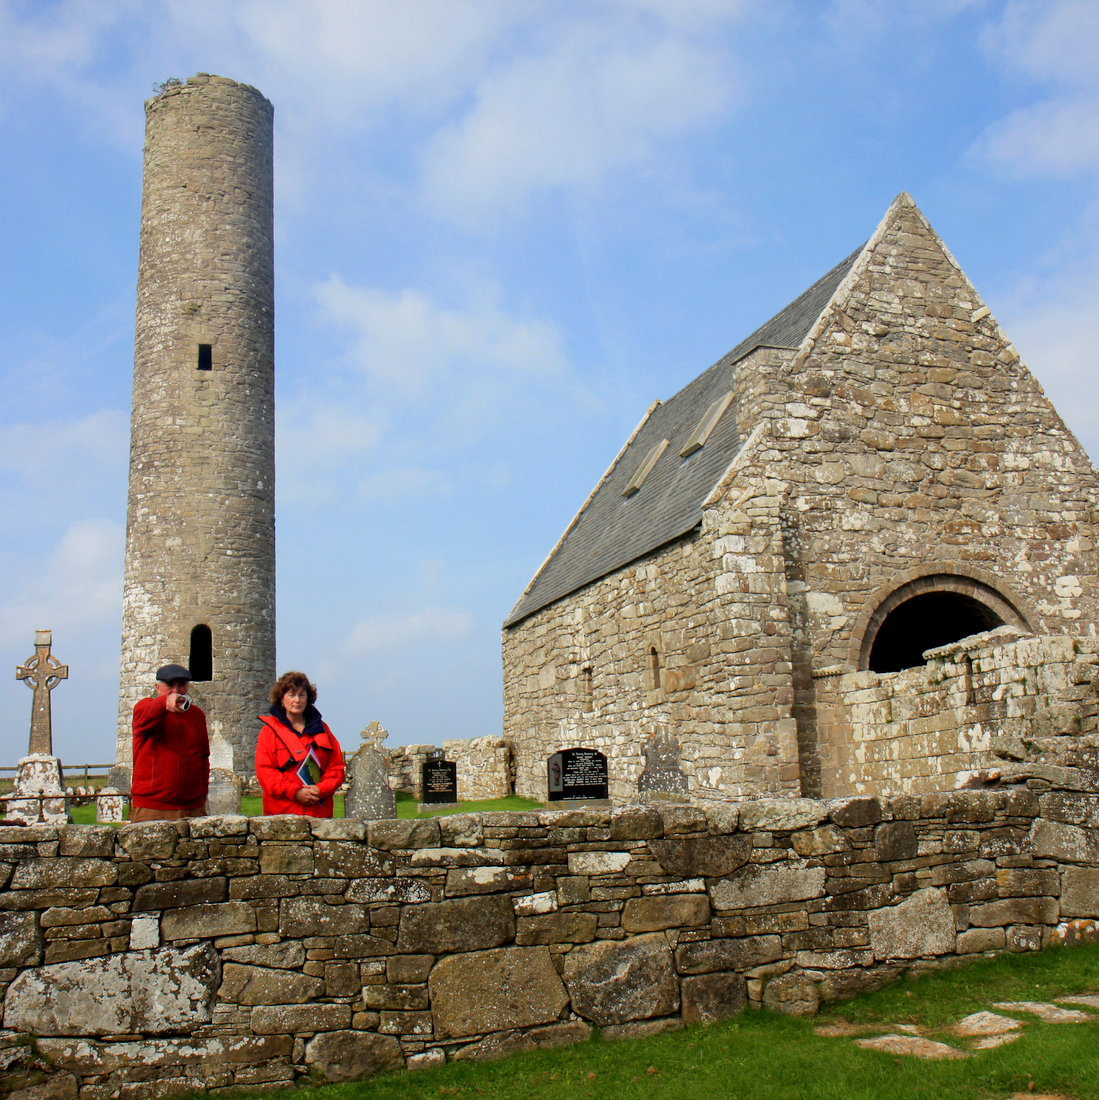 Gerard Madden, Holy Island Tours and Dawn Livingstone, CEO, Waterways Ireland photographed outside St. Caimin's Church and Round Tower on Holy Island during a visit to the Lough Derg island. Photograph by Gordon Daly